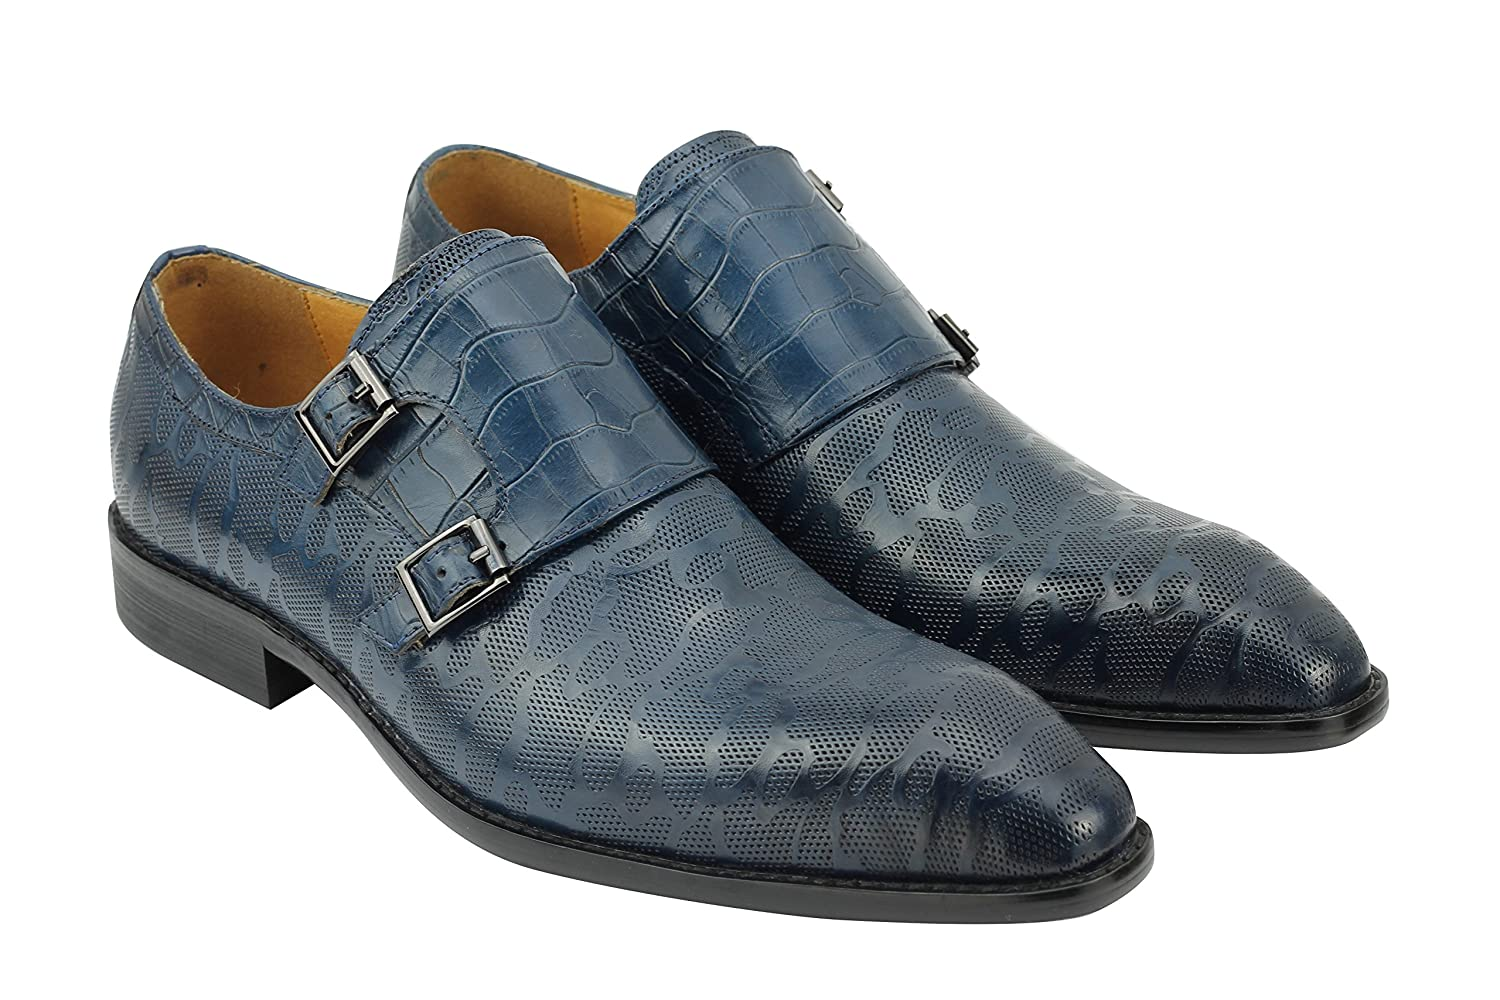 23afb71657277 Xposed New Mens Polished Patterned Real Leather Blue Monk Straps MOD Shoes  6 7 8 9 10 11 11.5: Amazon.co.uk: Shoes & Bags